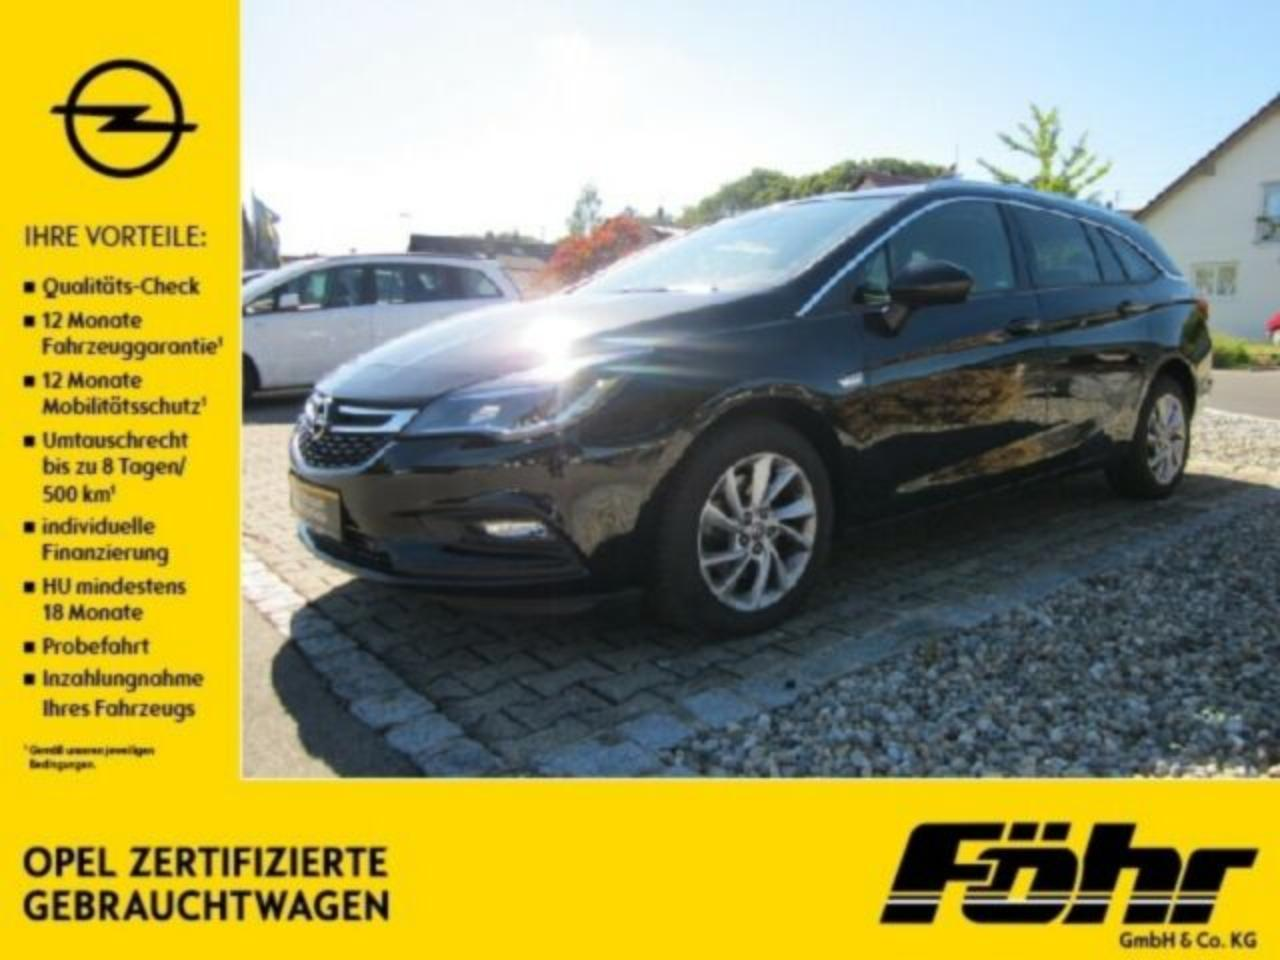 Opel Astra ST 1.6 Turbo DI 136 PS 6 AT INNOVATION